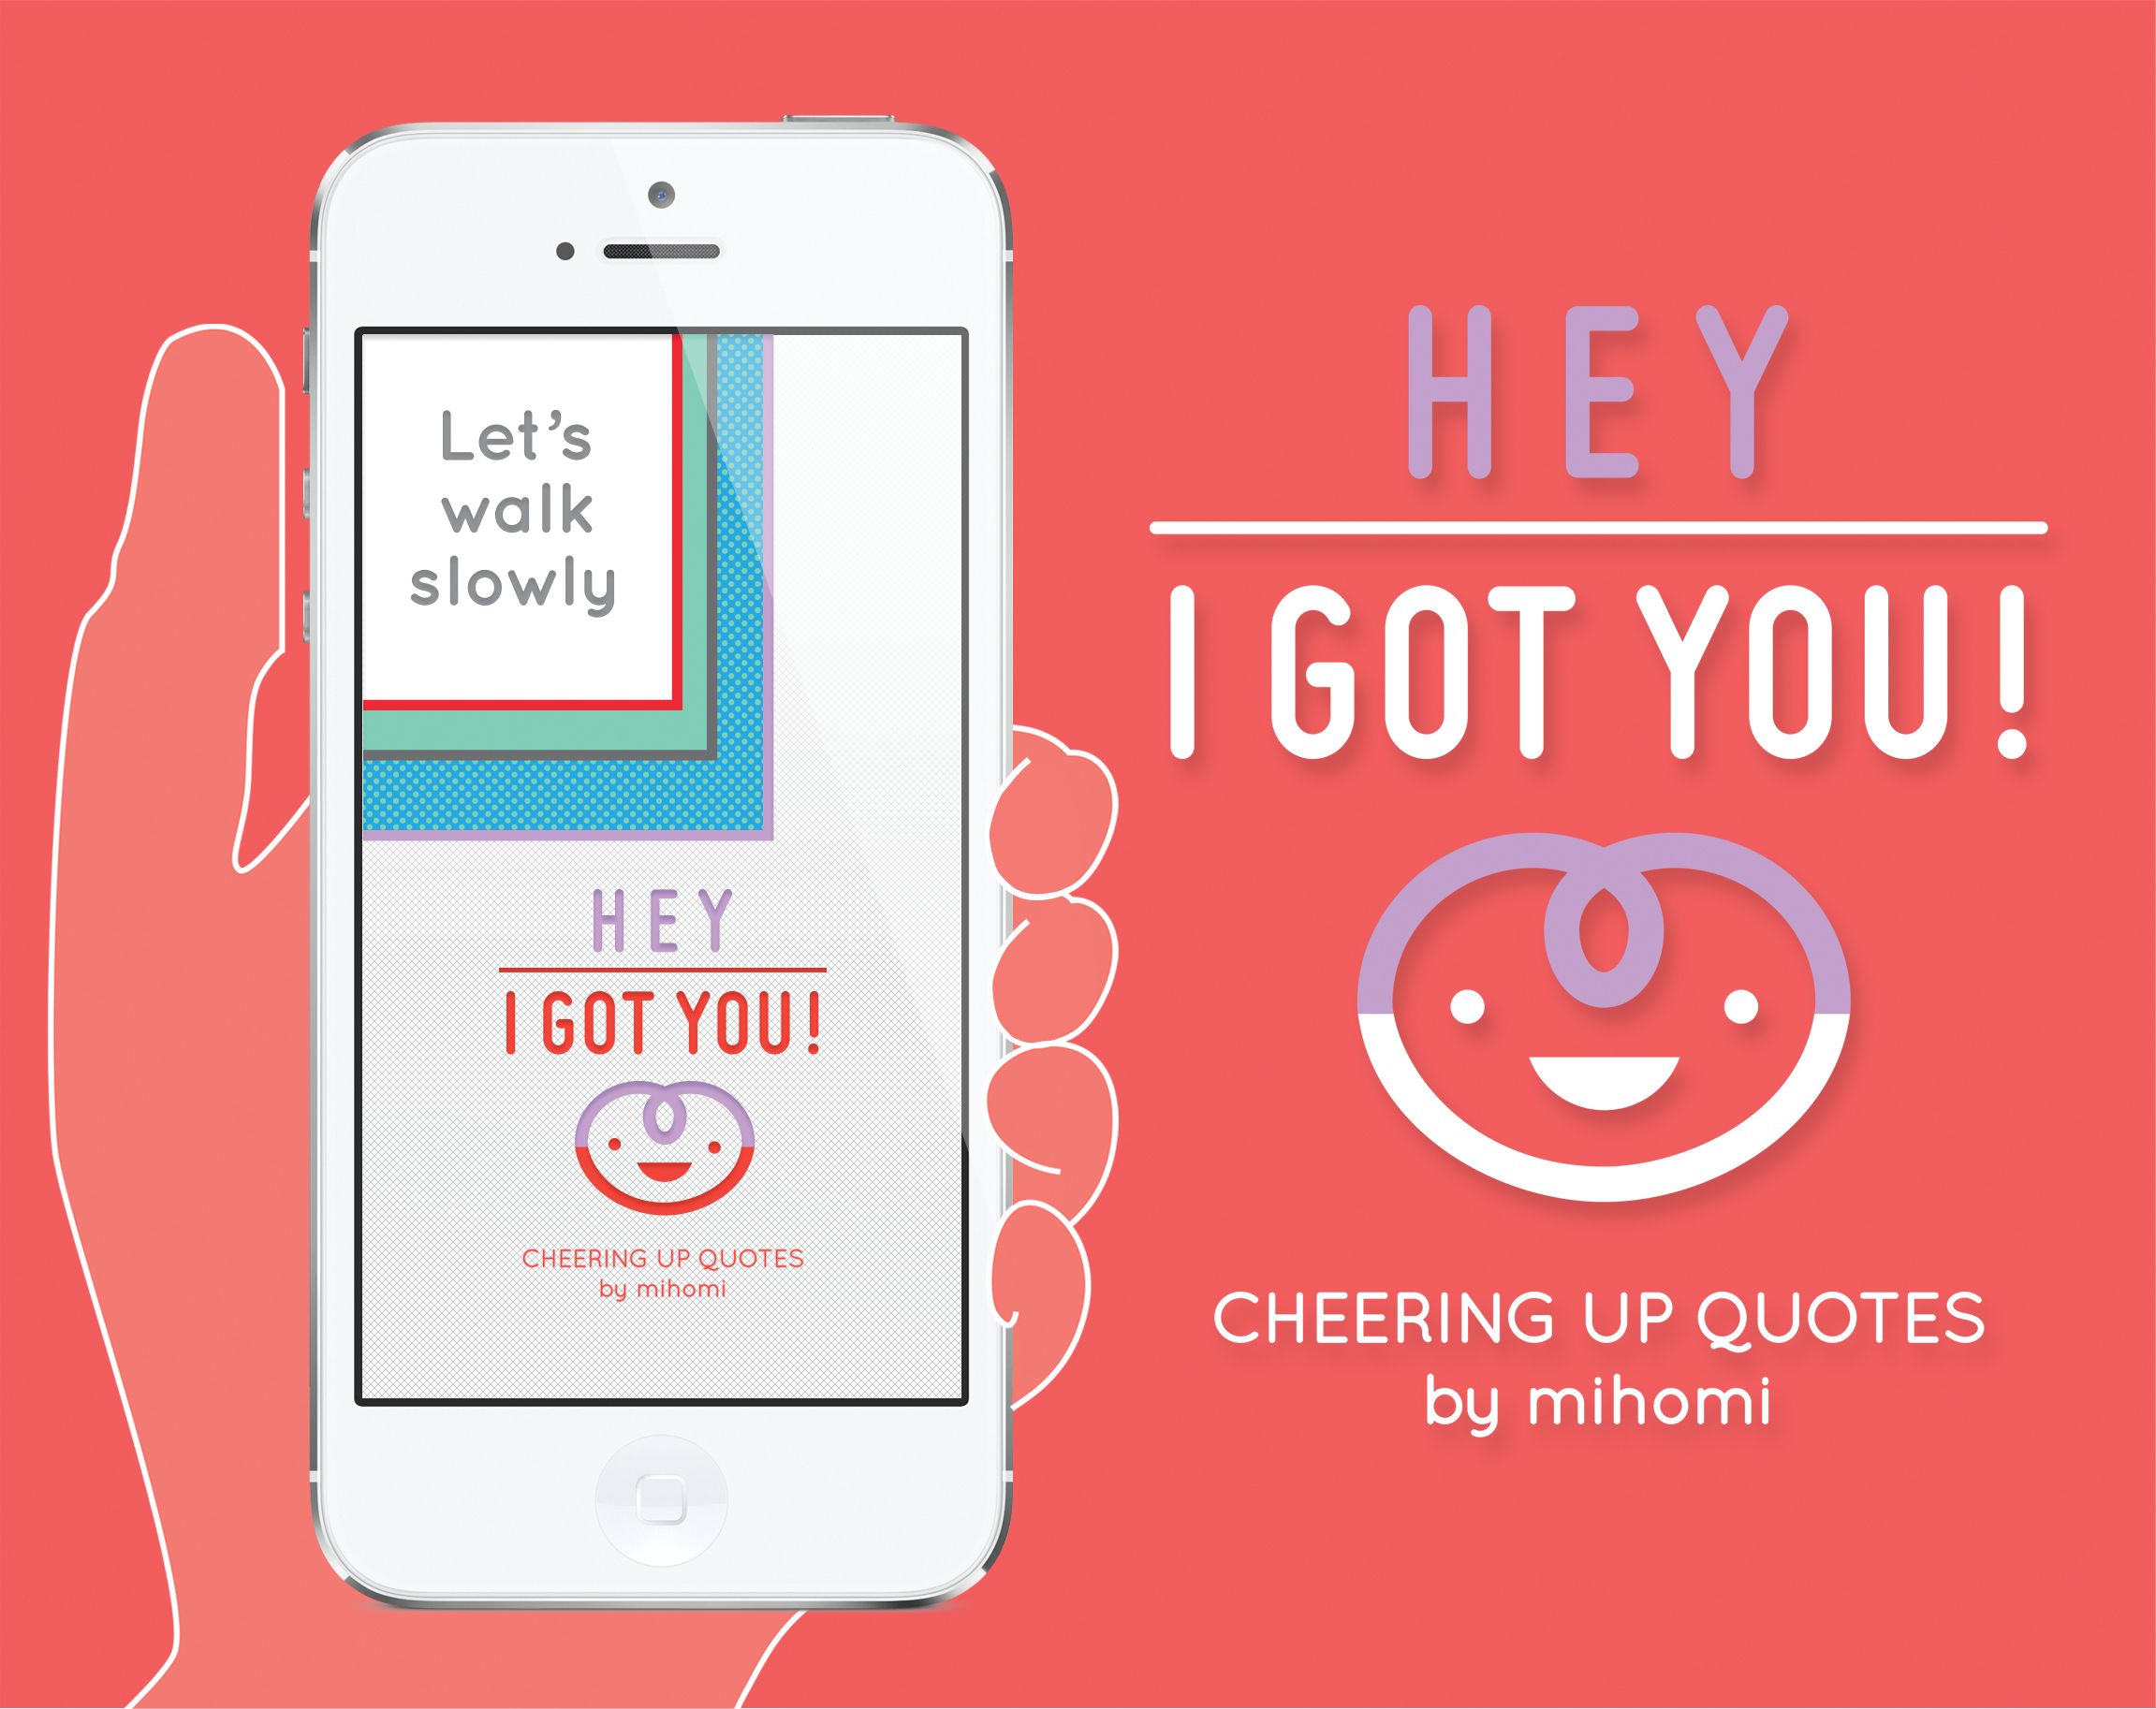 mihomicare: Hey I got you! app and tablet design